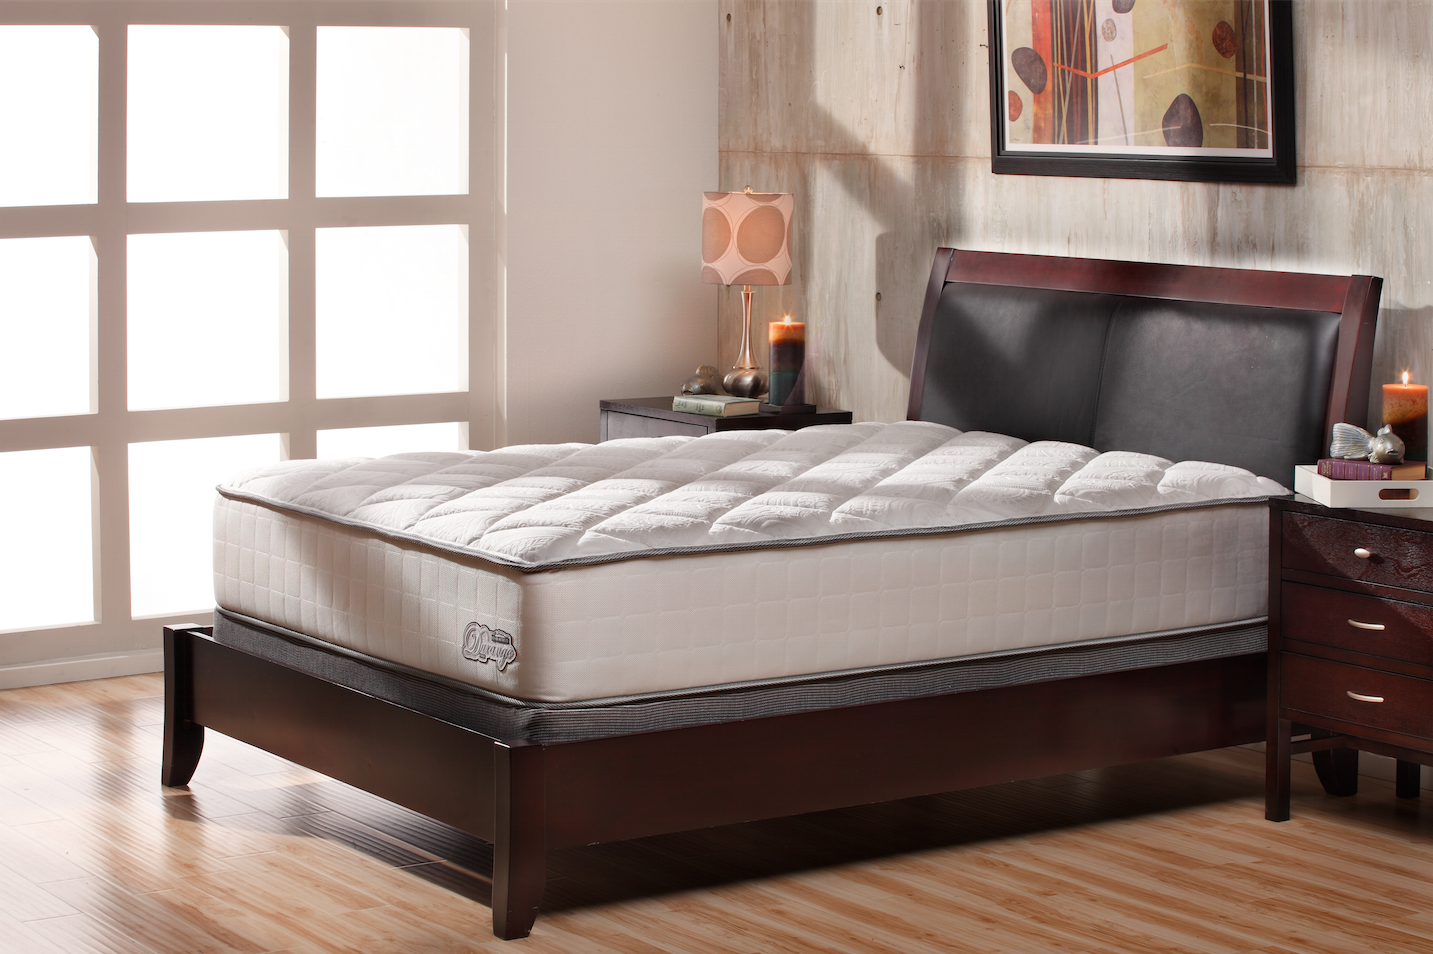 Denver Mattress Company In Cheyenne Wy 307 638 9